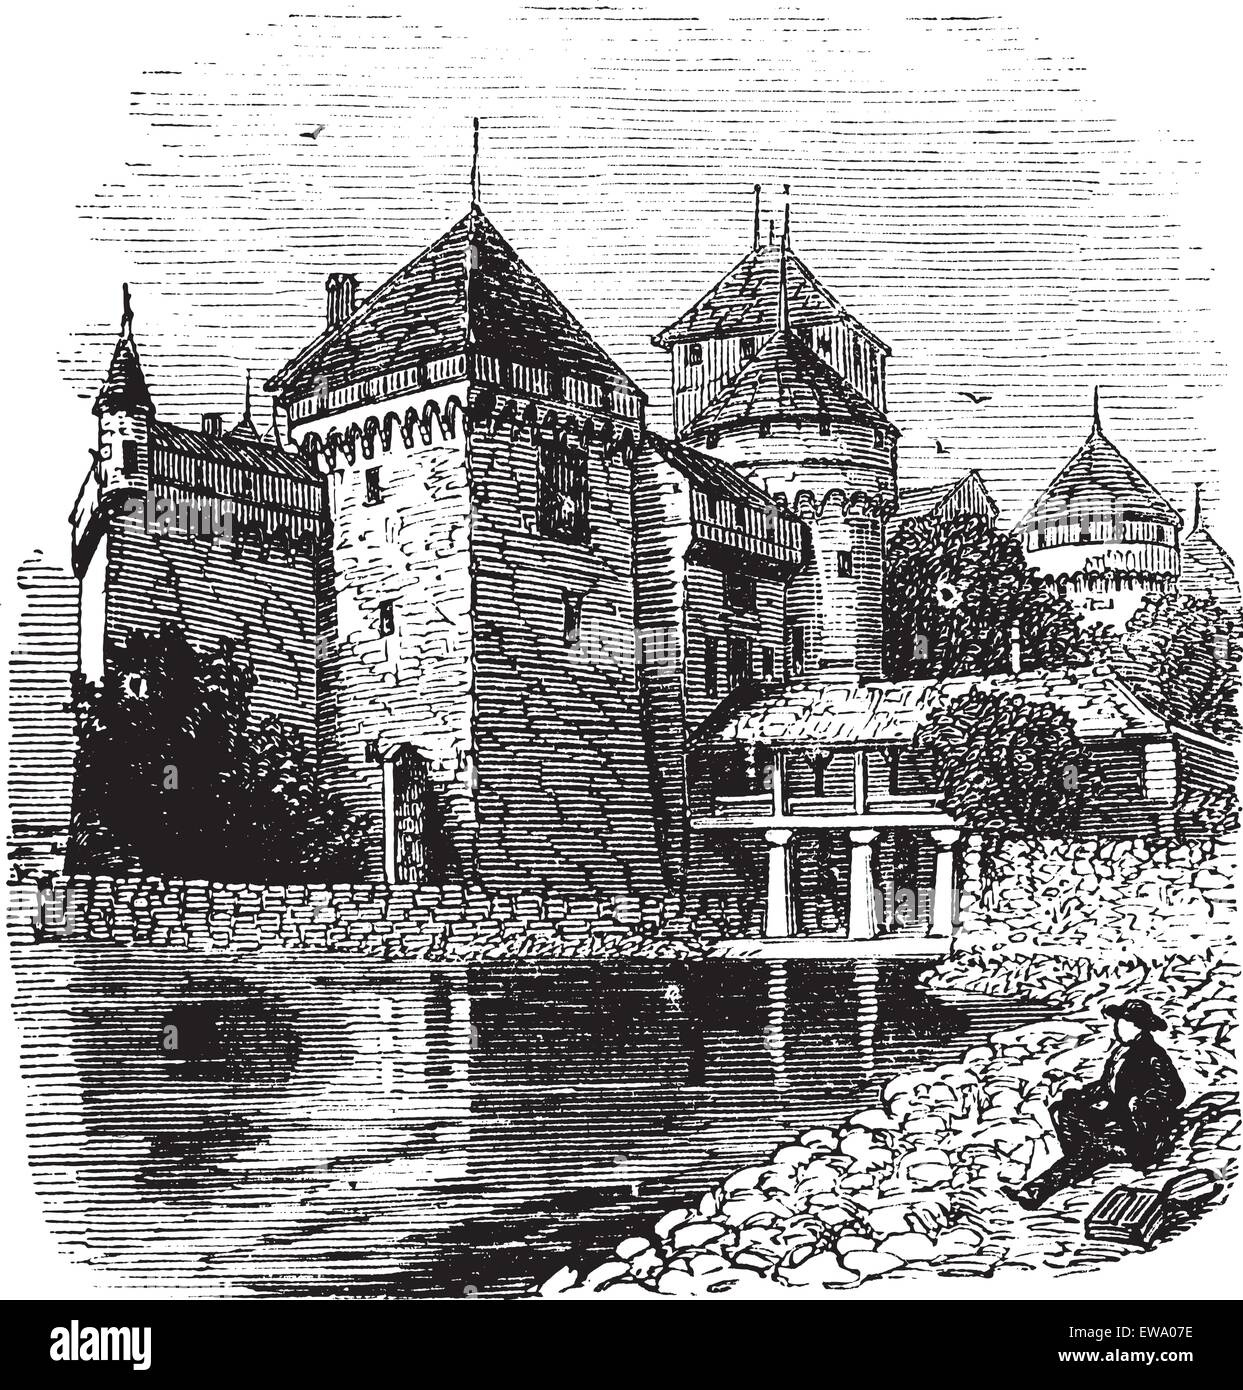 Chillon Castle or Chateau de Chillon in Veytaux, Switzerland, during the 1890s, vintage engraving. Old engraved - Stock Vector